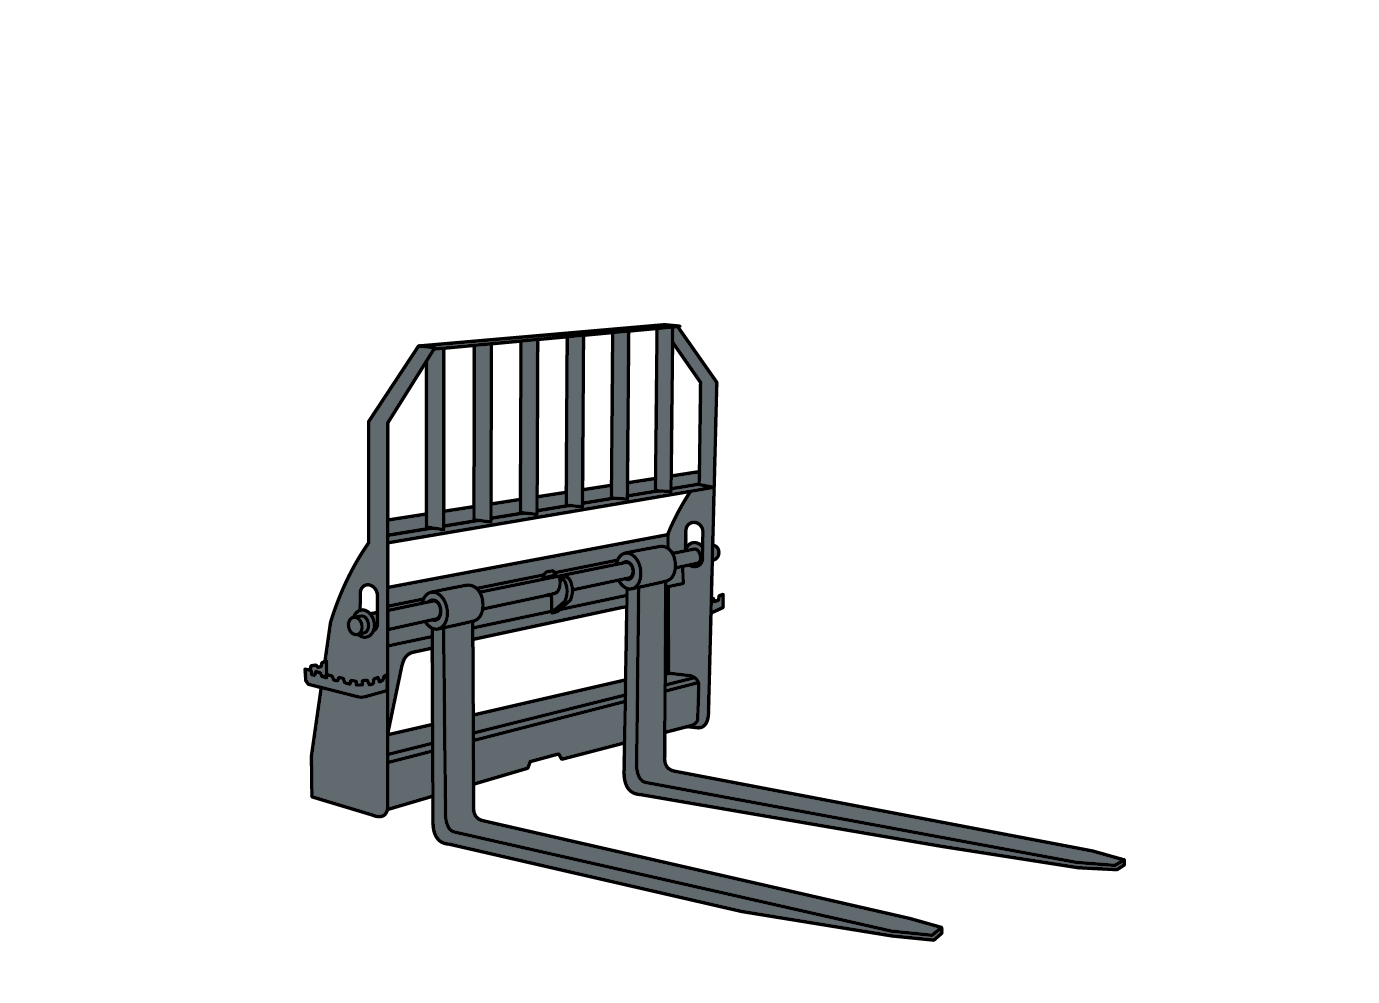 PALLET FORK illustration